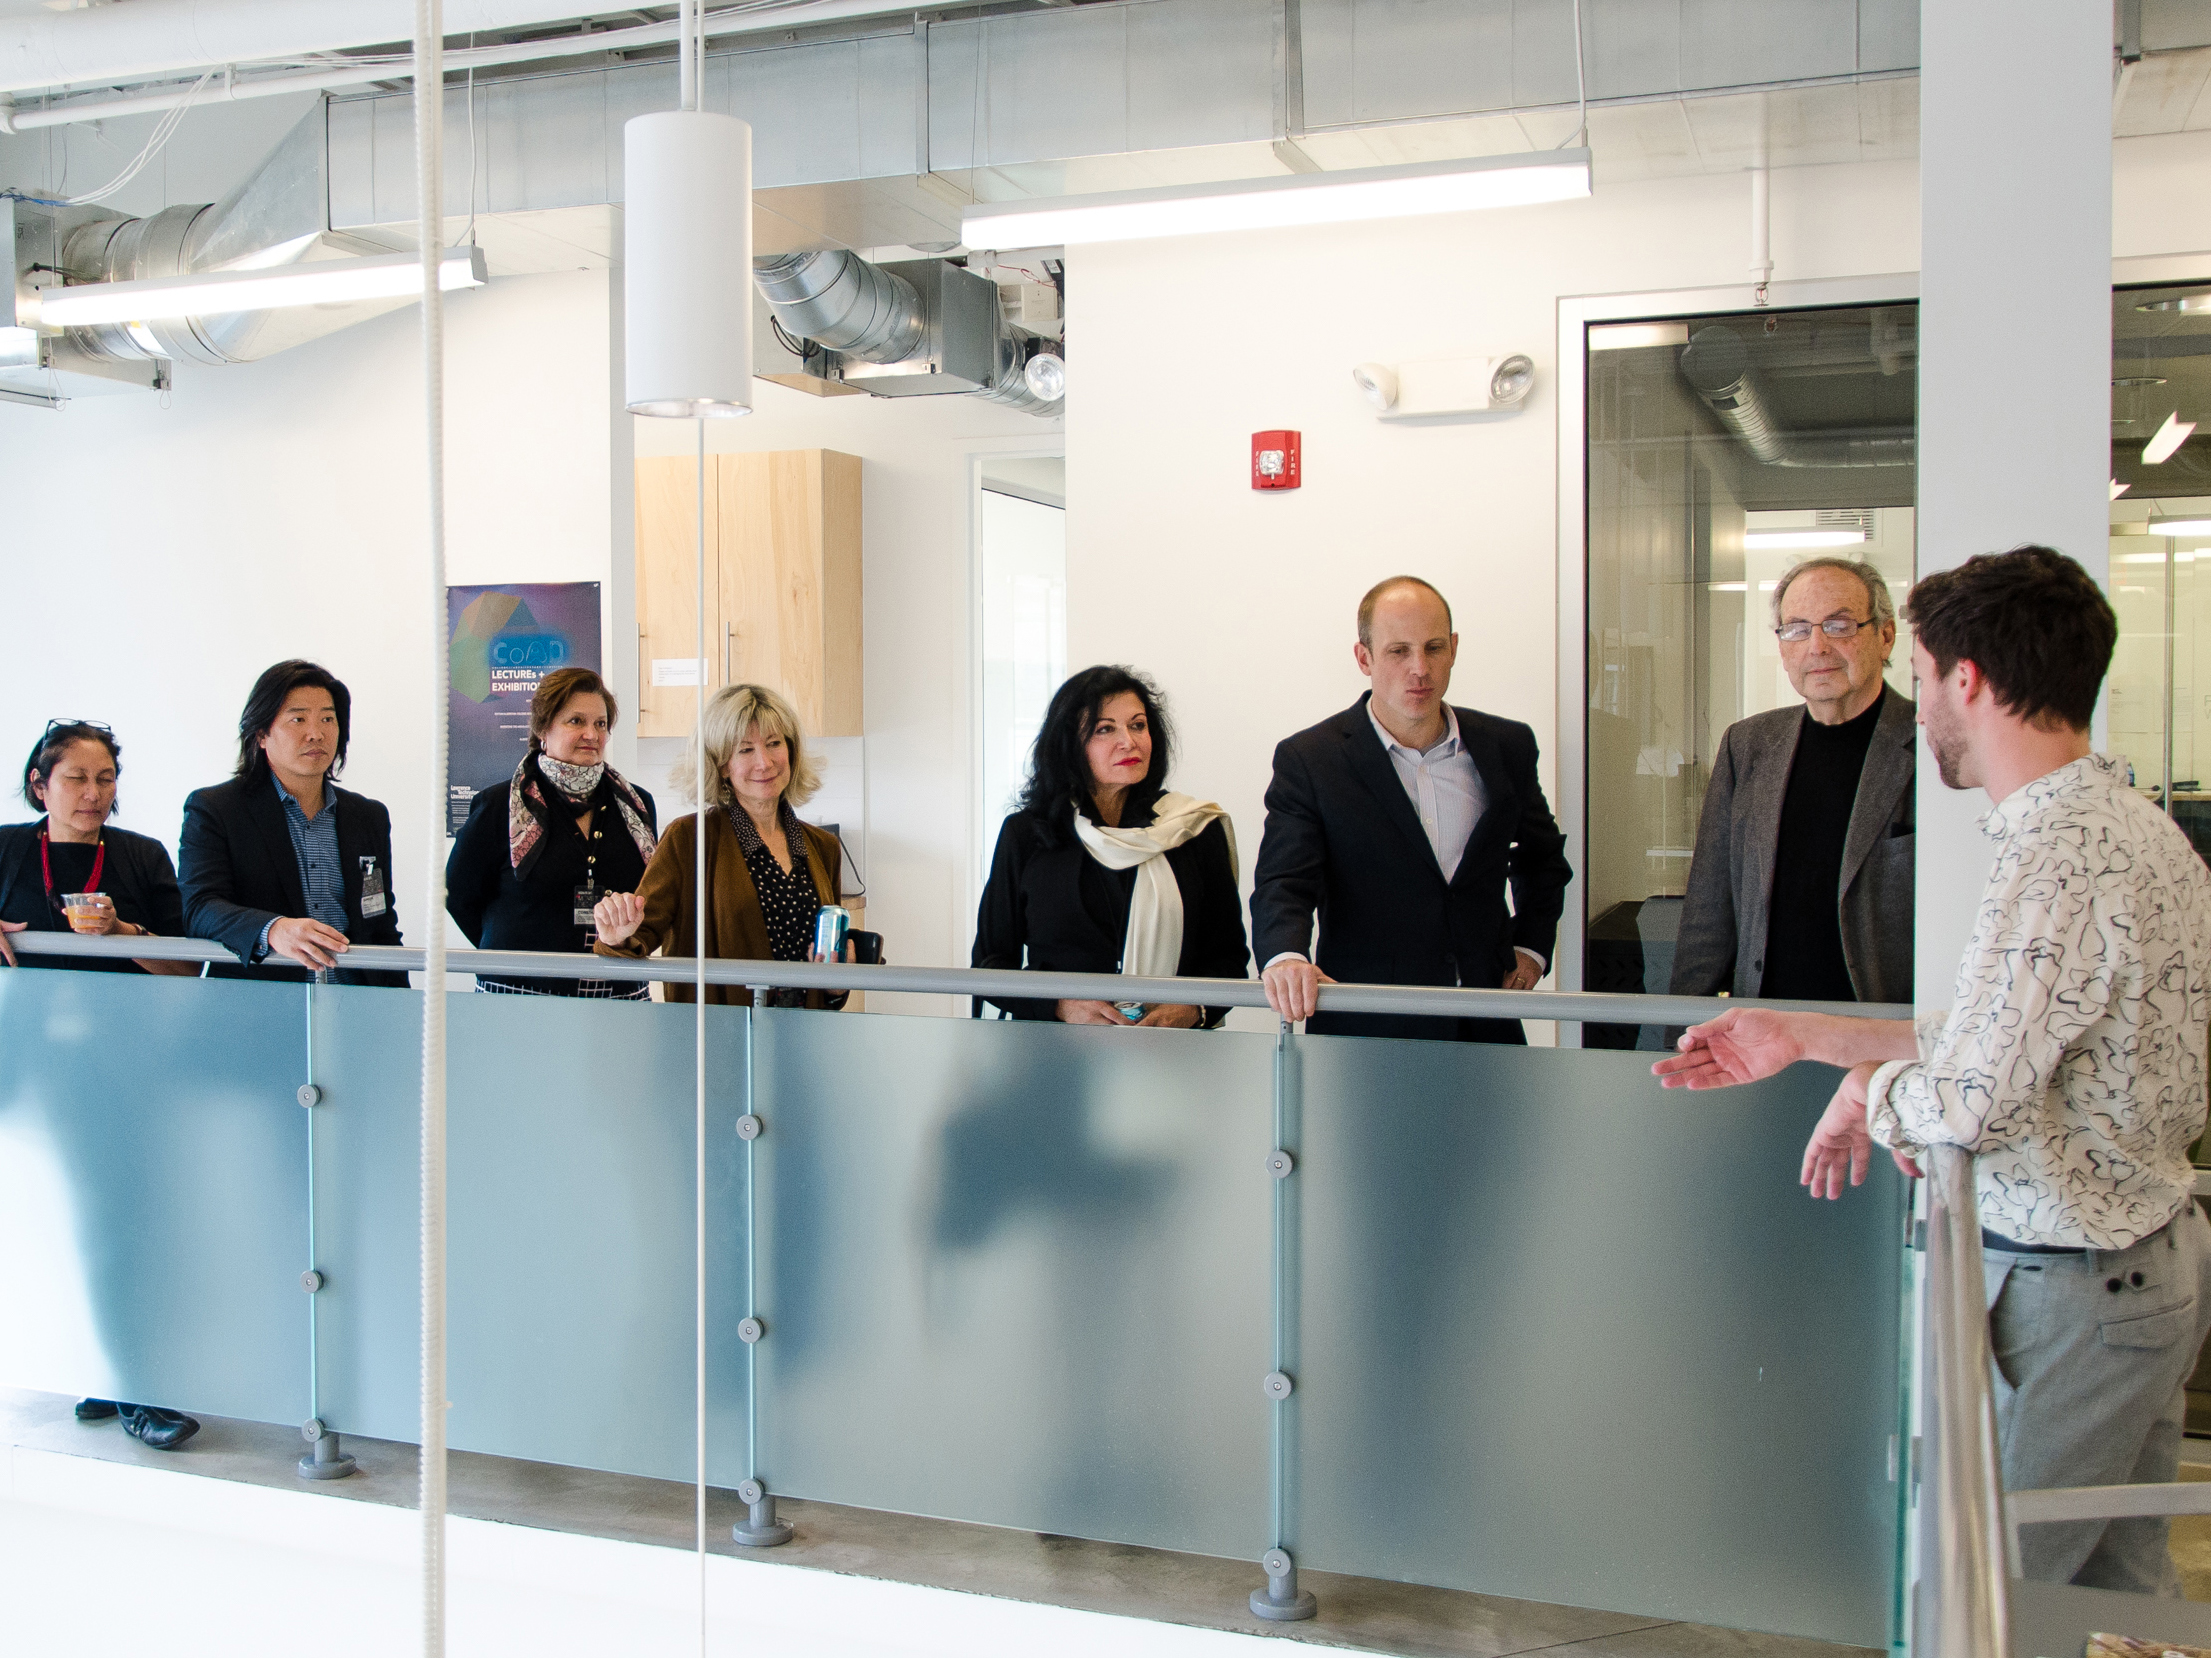 Course IV Alumni touring the Detroit Center for Design and Technology as part of MITArchA's recent ACSA event.